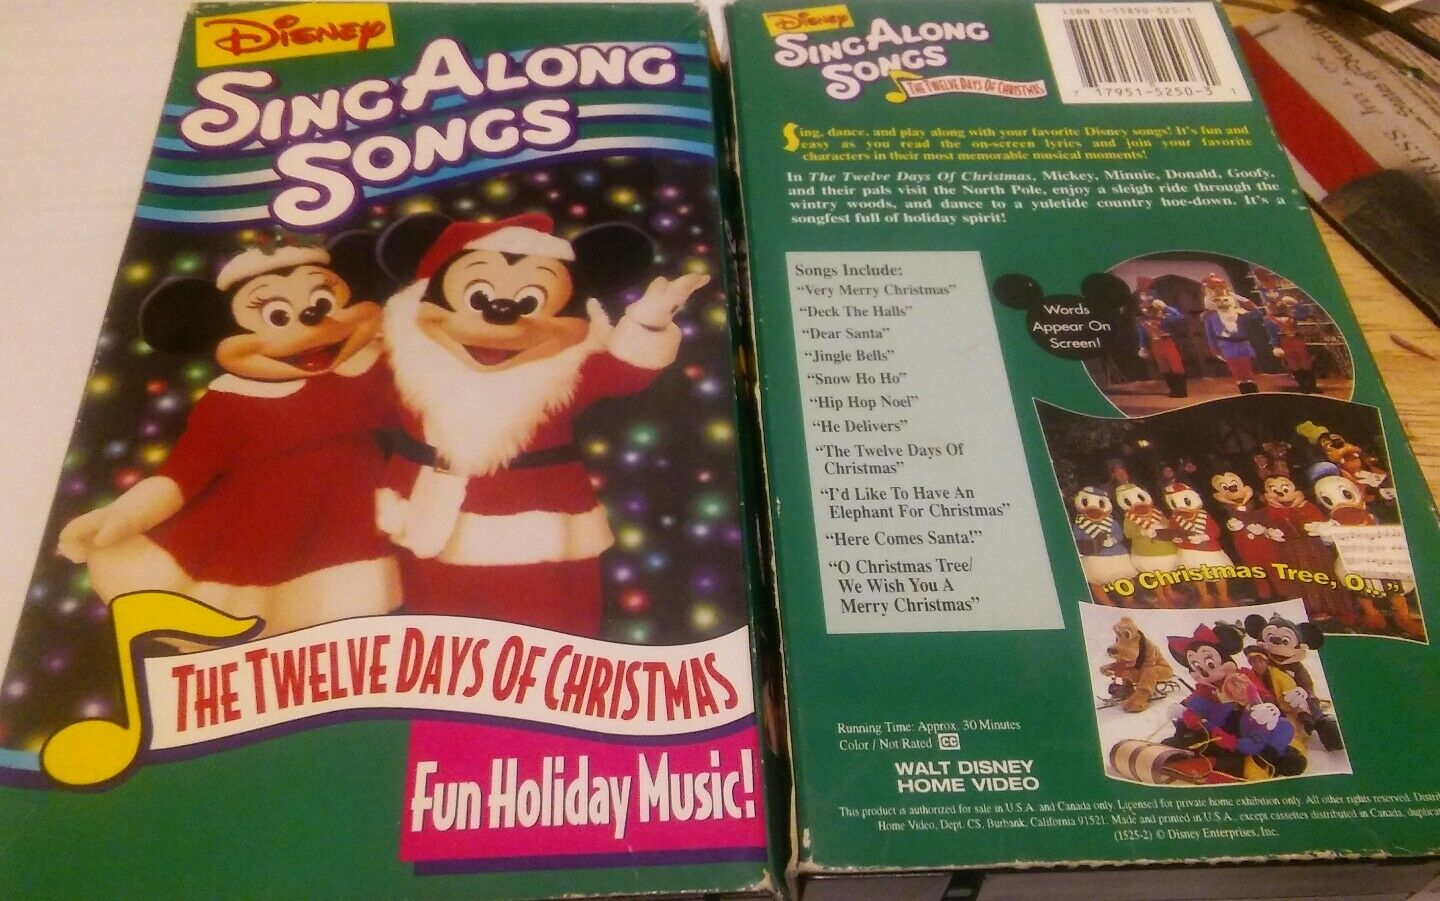 disneys sing along songs the twelve days of christmas vhs 1997 ebay - Disney 12 Days Of Christmas